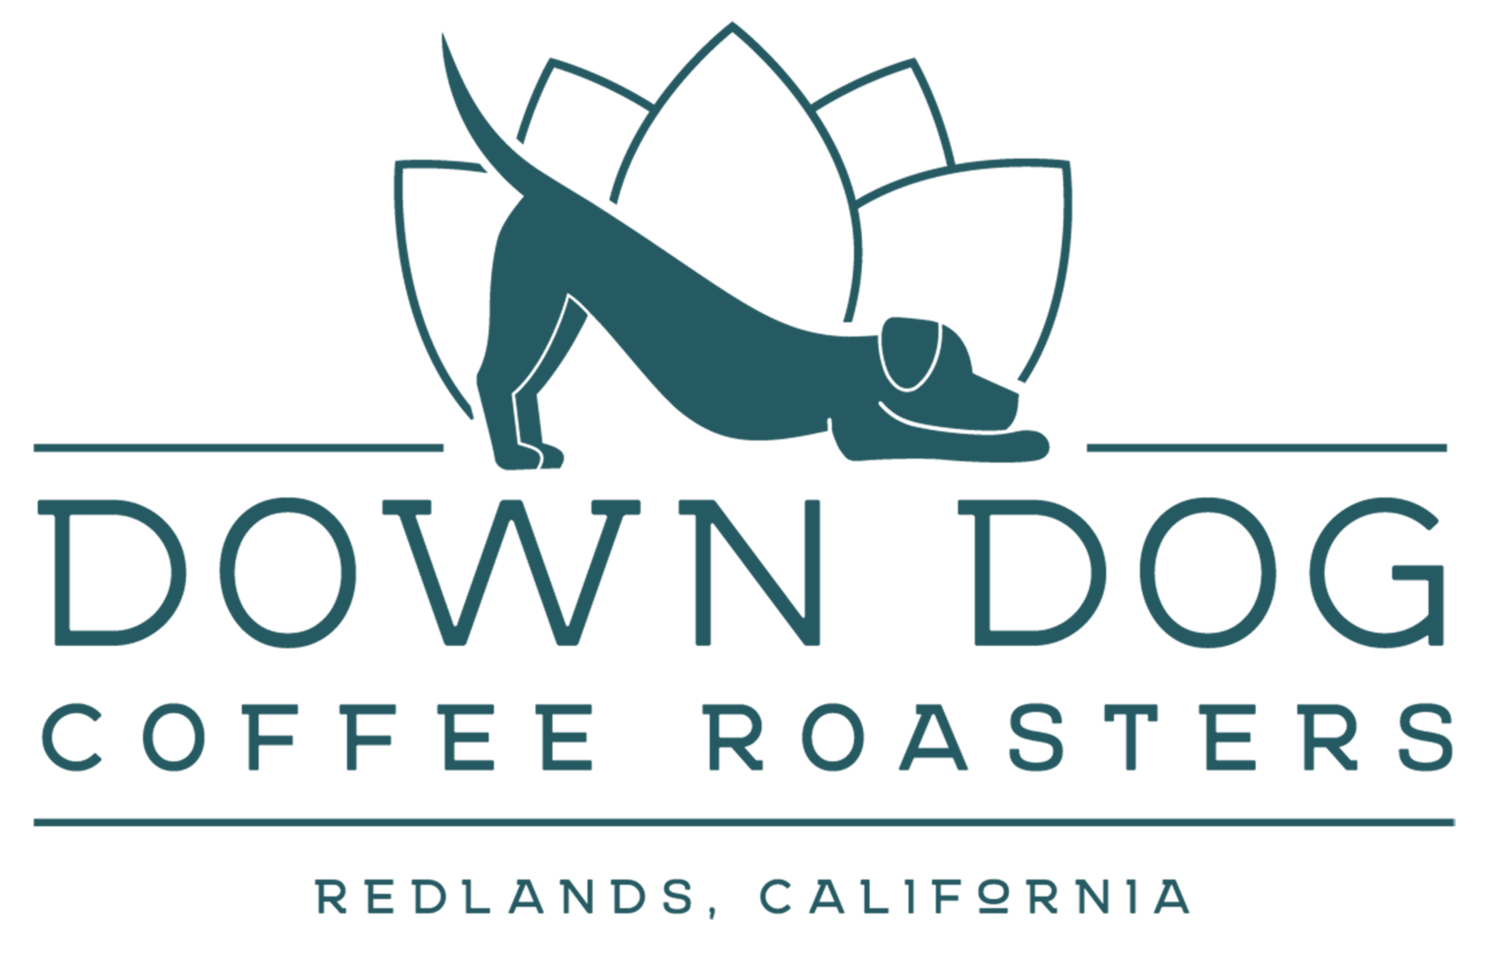 Down Dog Coffee Roasters